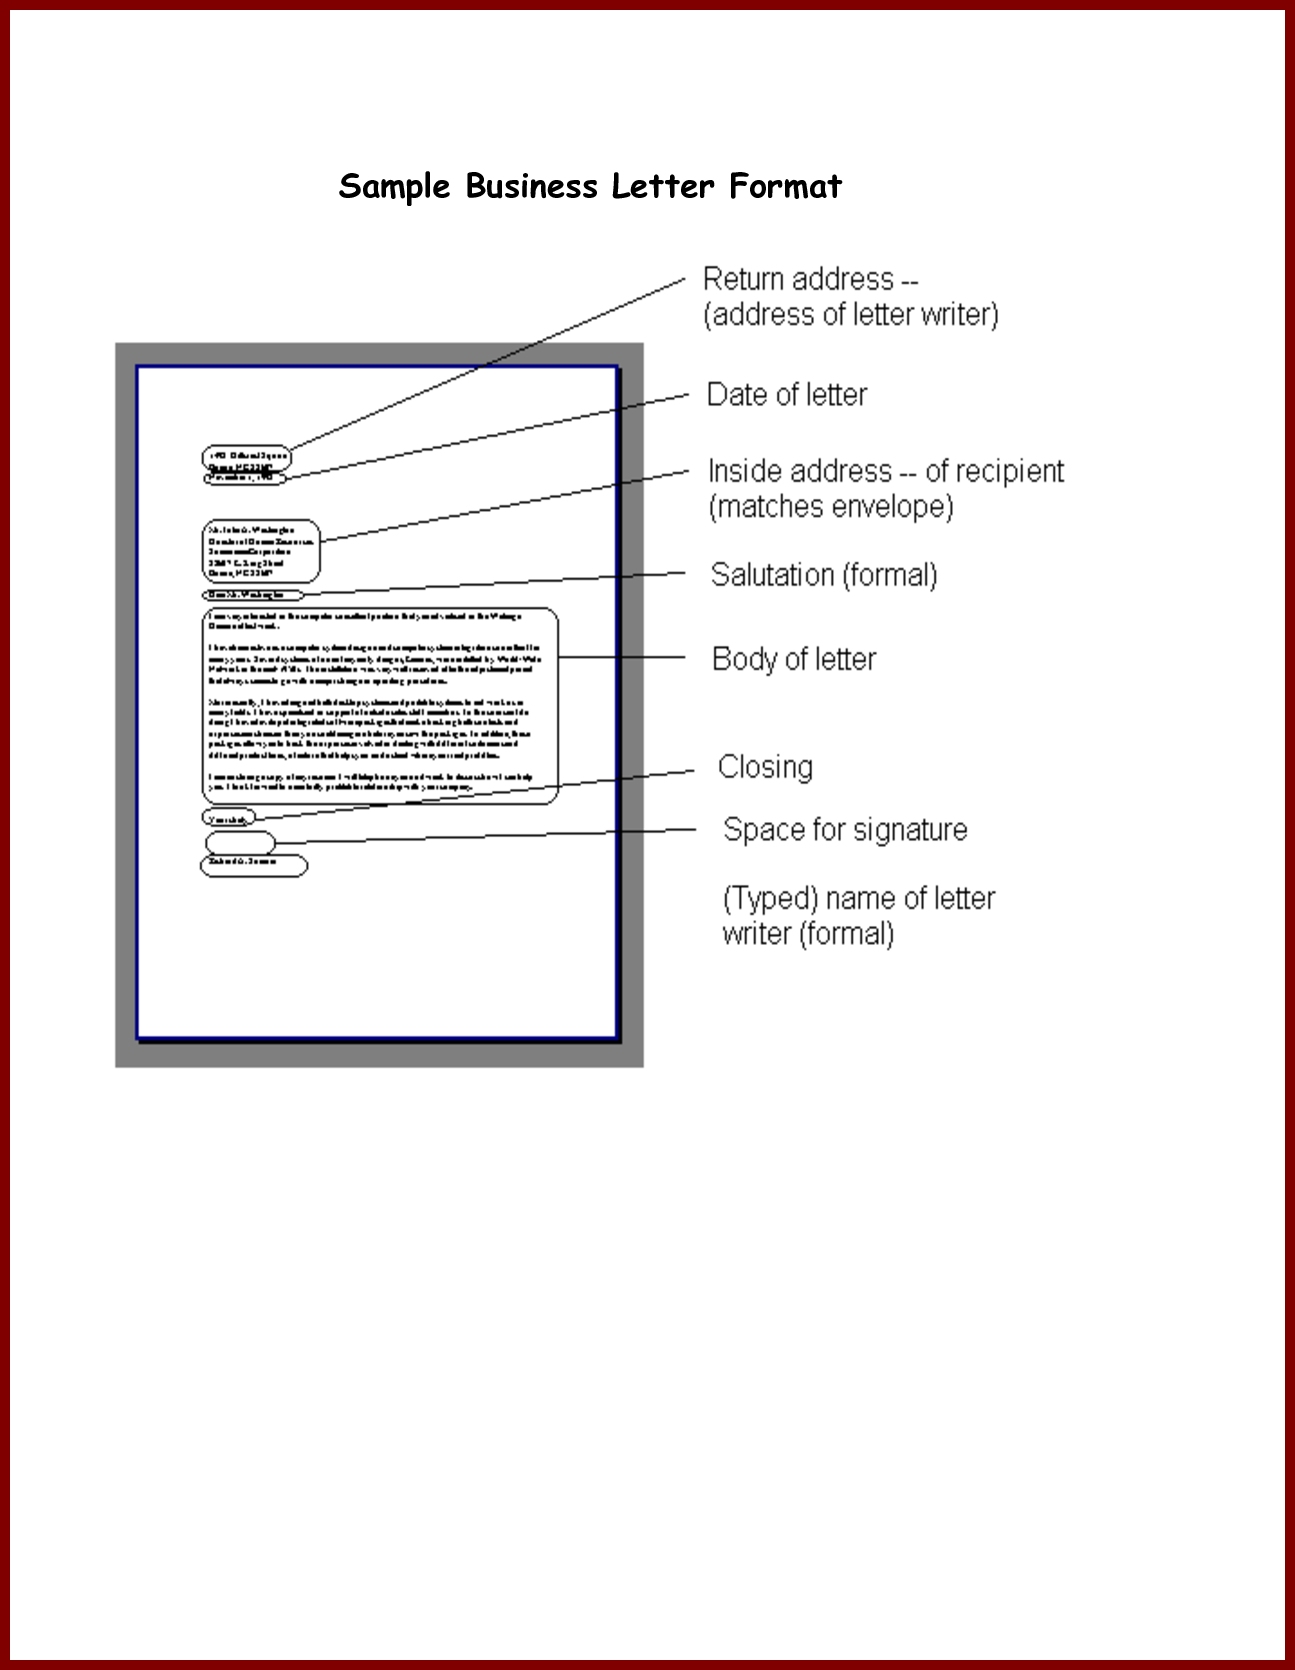 Formats Of Business Letter from appareldream.com